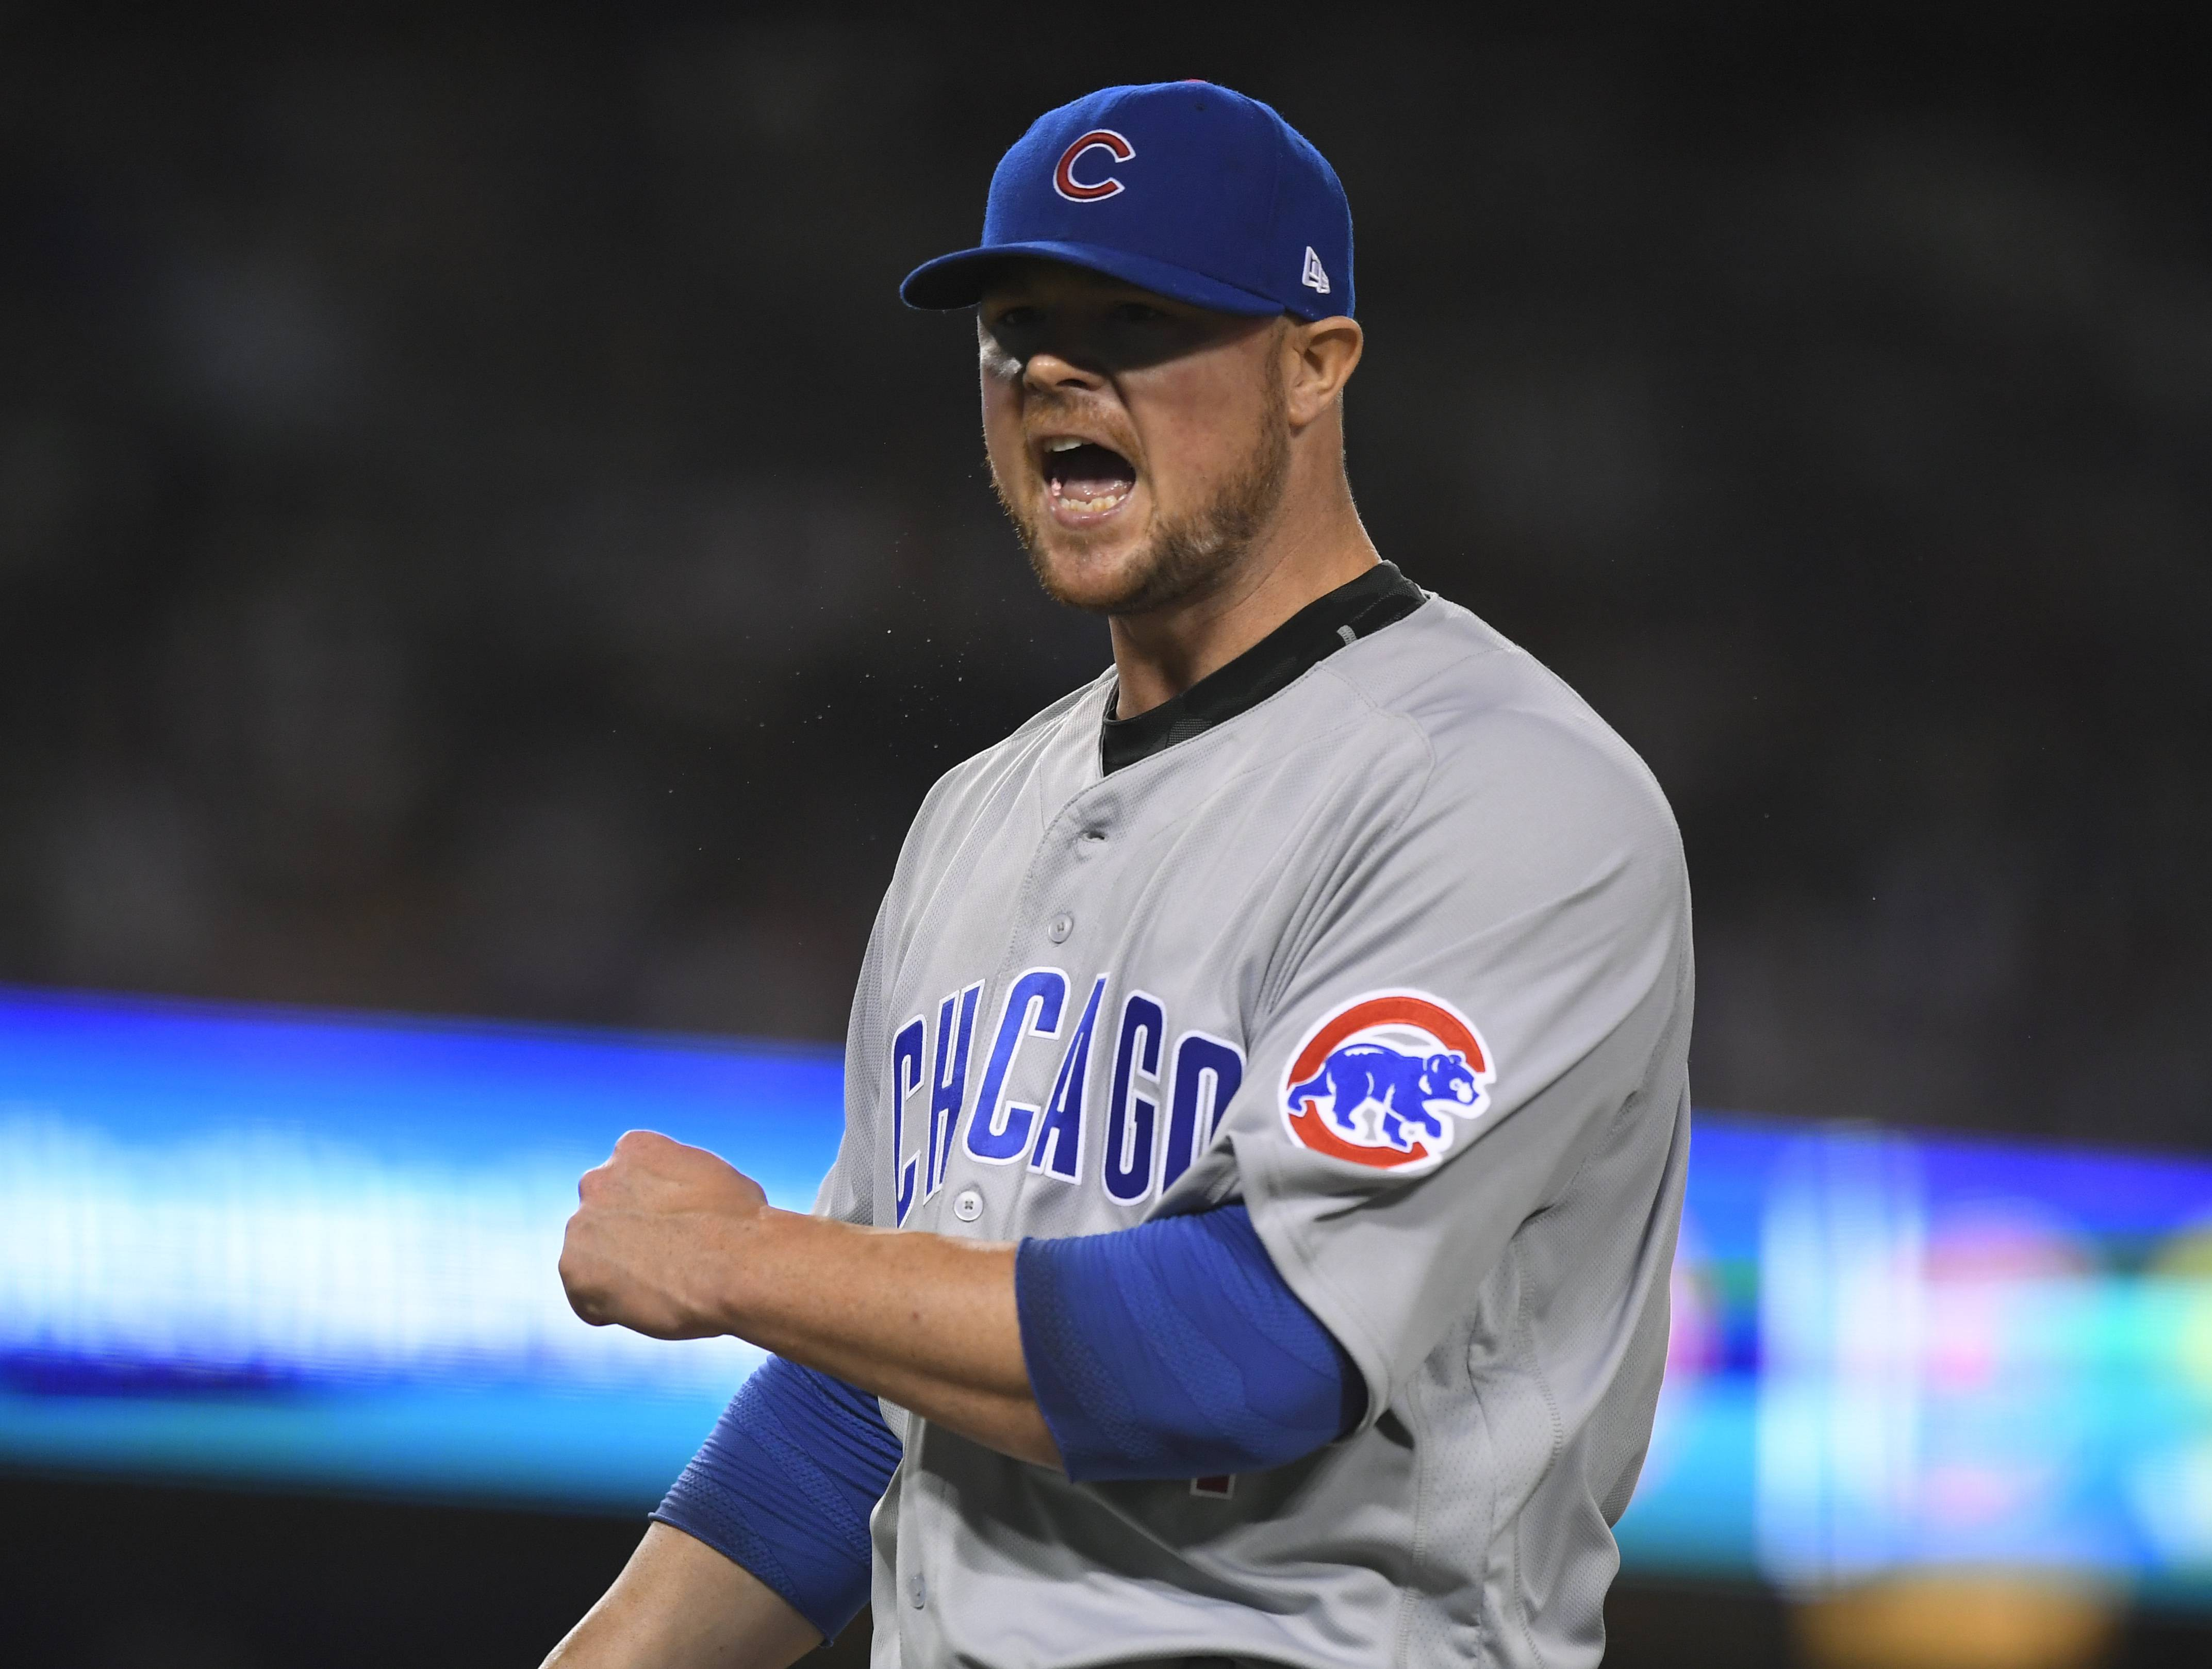 Chicago Cubs left-hander Jon Lester has been exceptionally good in the postseason, making him the ace of the pitching staff.